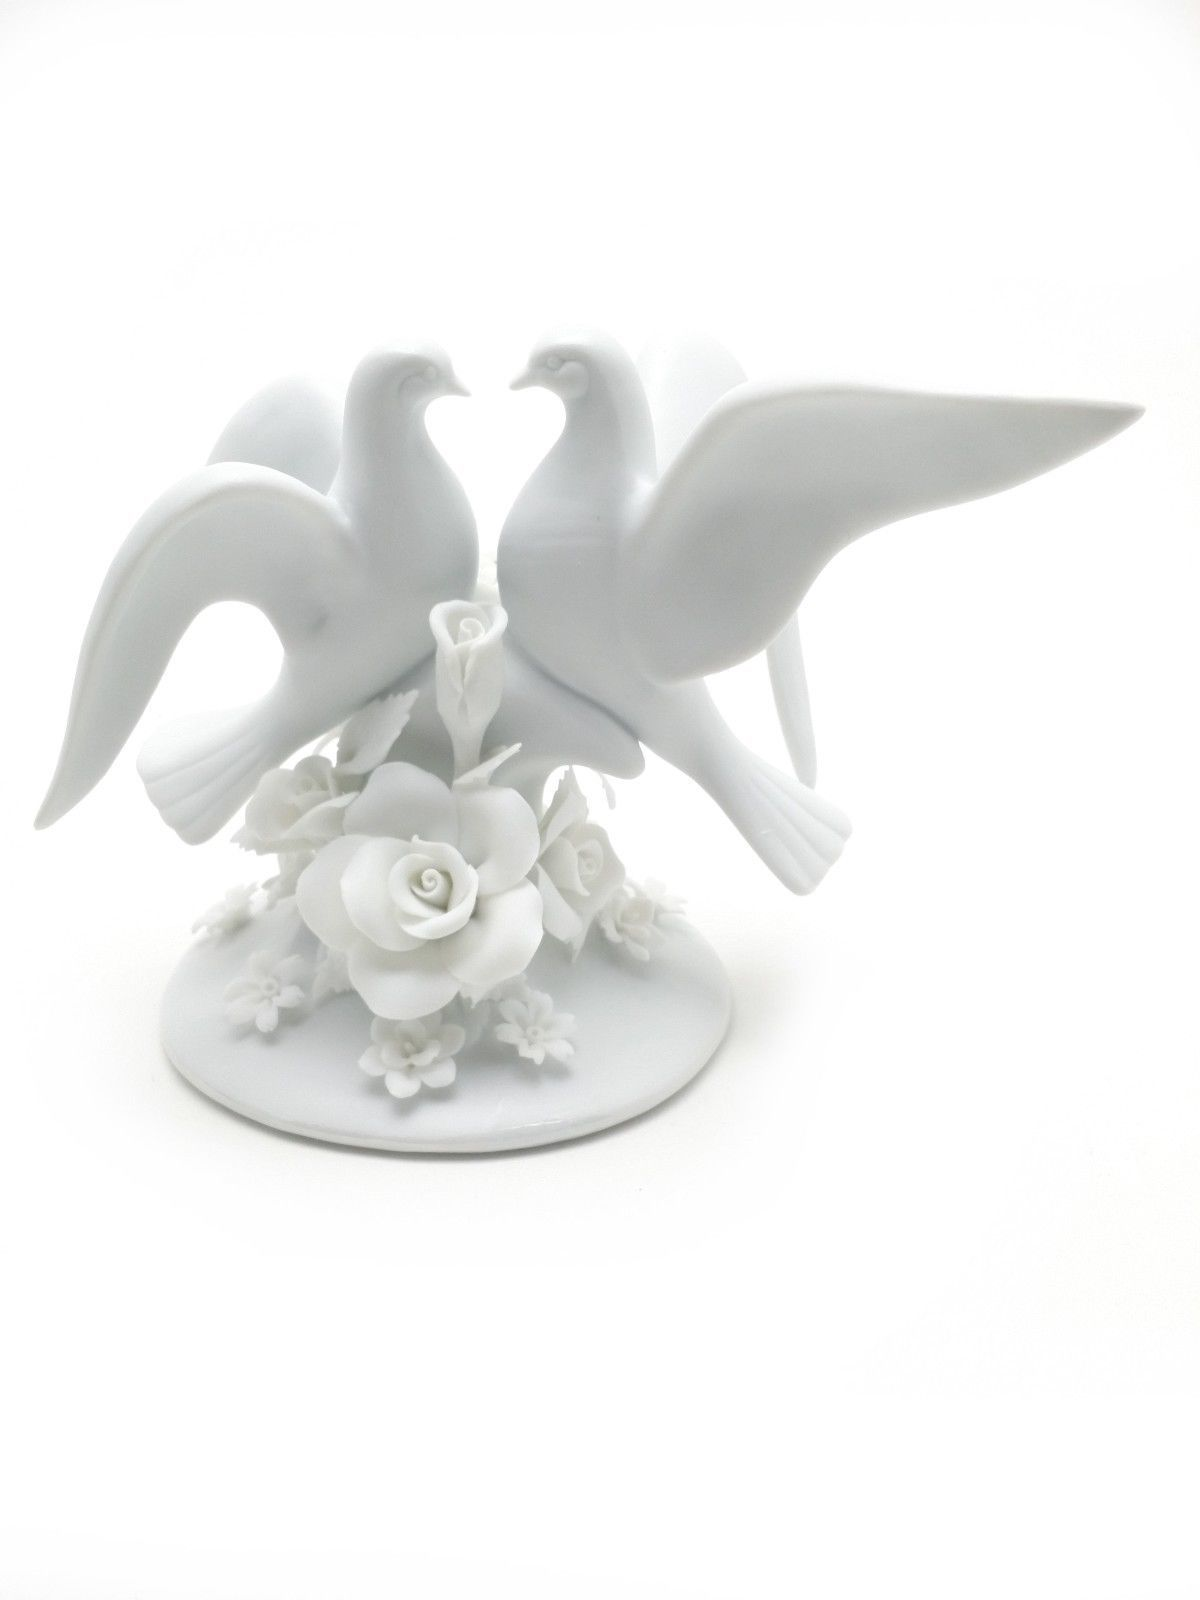 Two White Dove and Rose Flower Themed Cake Topper